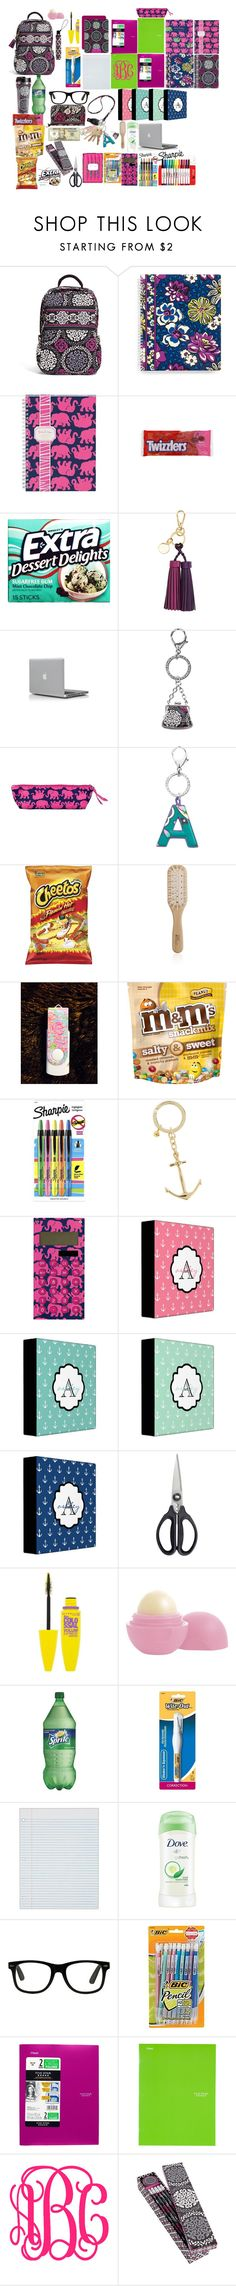 back to school preppy school supplies for teens preppy s - back to school prepp. back to school preppy school supplies for teens preppy s – back to school preppy school supplies